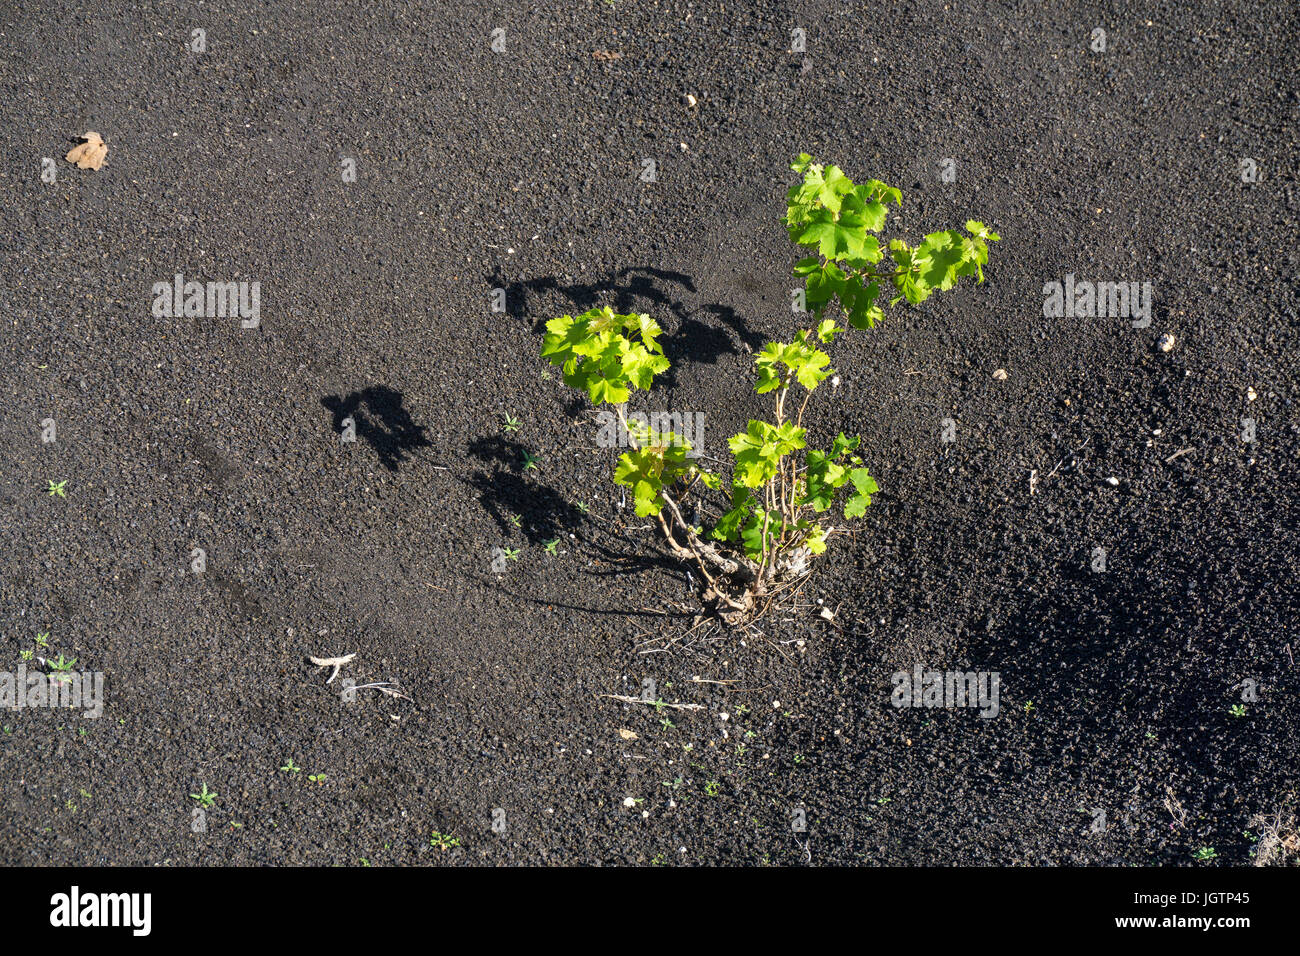 Volcanic wine growing, lava stone murals and hollows protecting vines, vineyard at La Geria, Lanzarote island, Canary Stock Photo